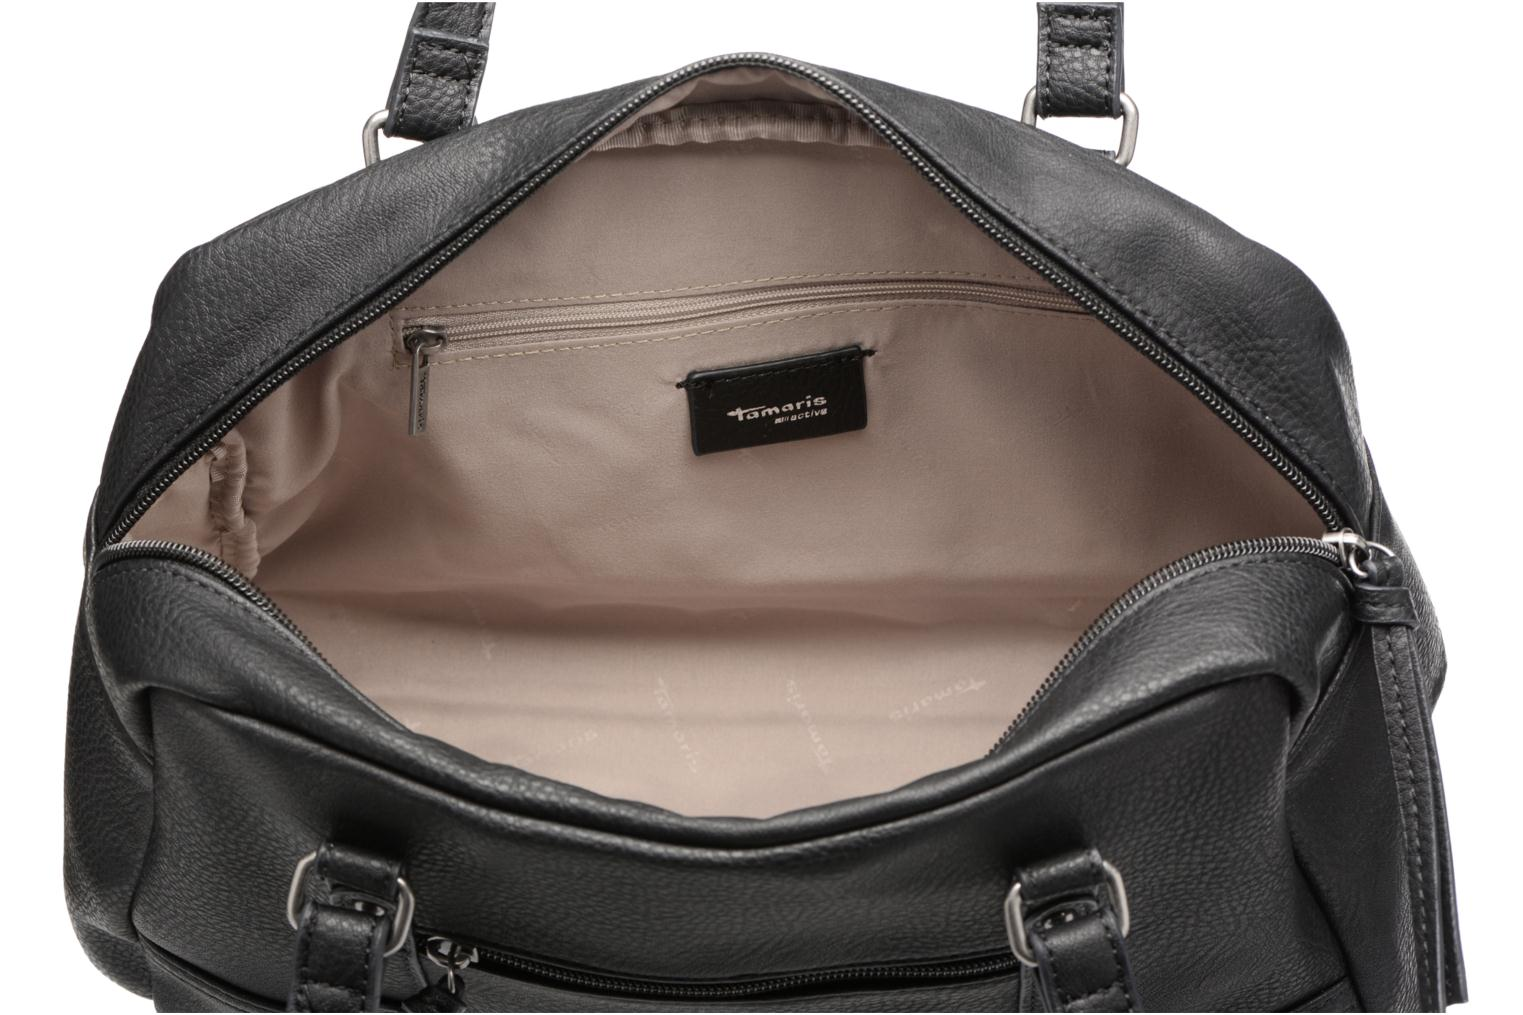 René - Bowling bag Black